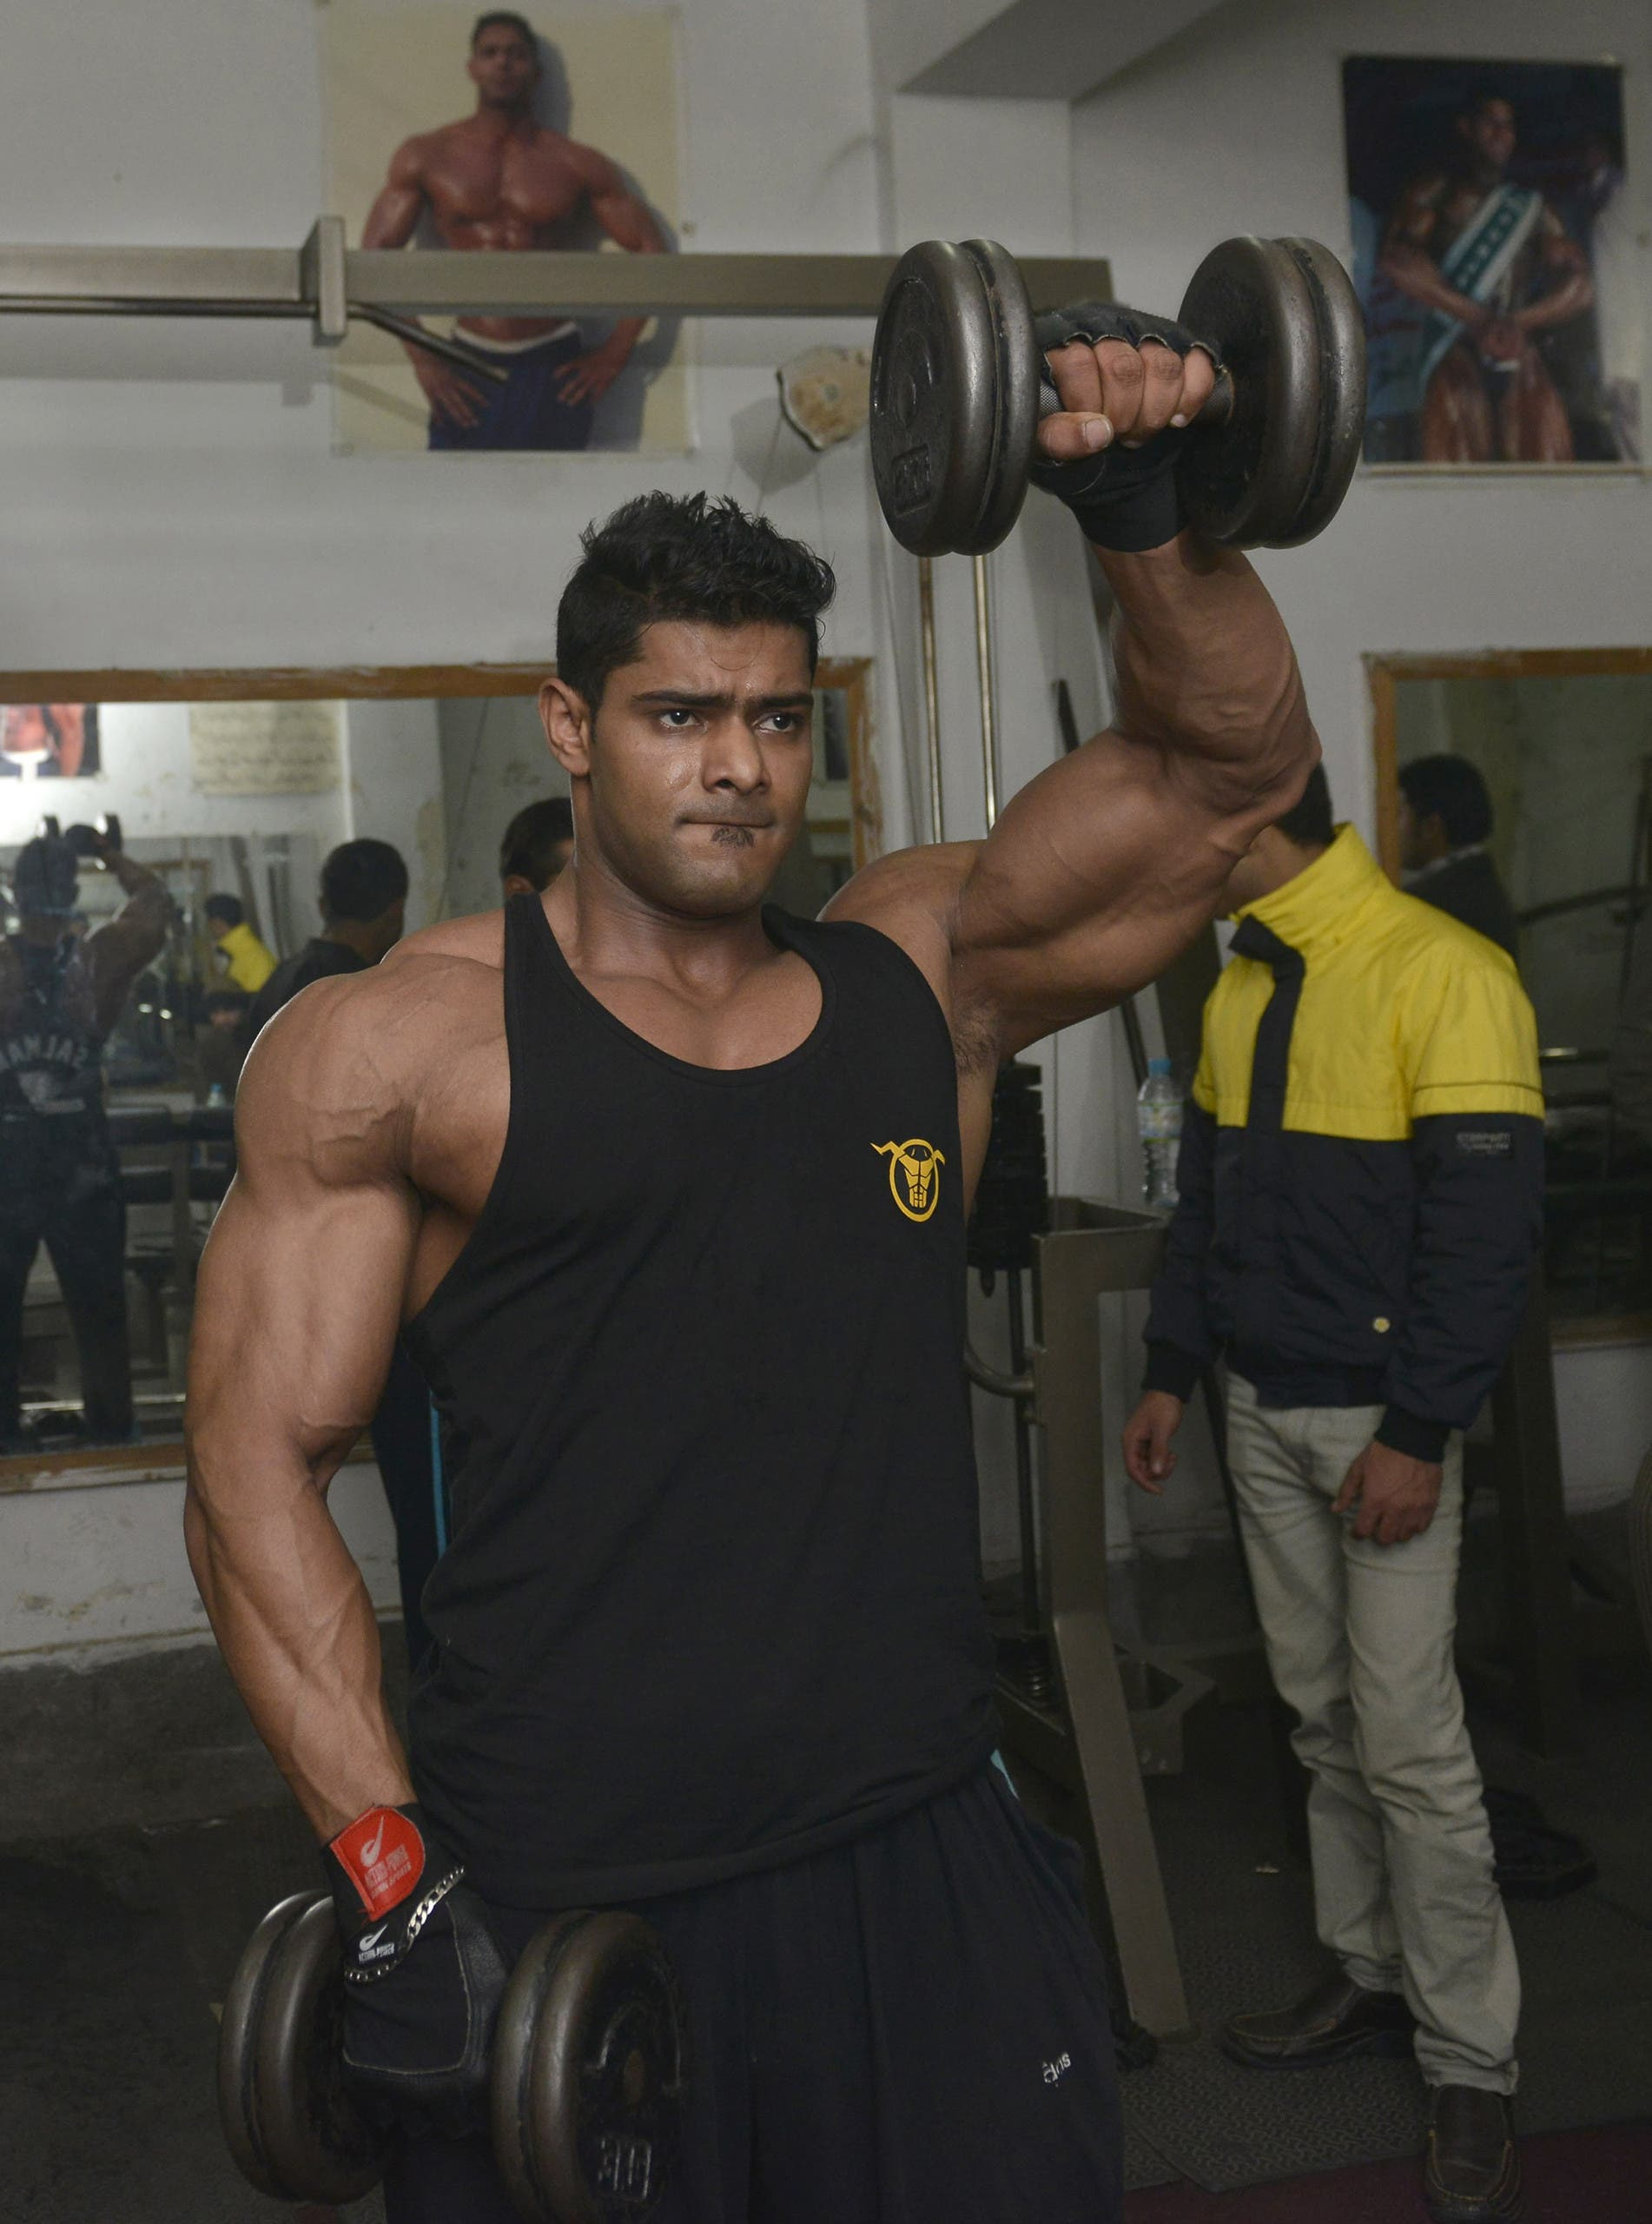 Mr. Musclemania's dilemma: abandon his passion or Pakistan